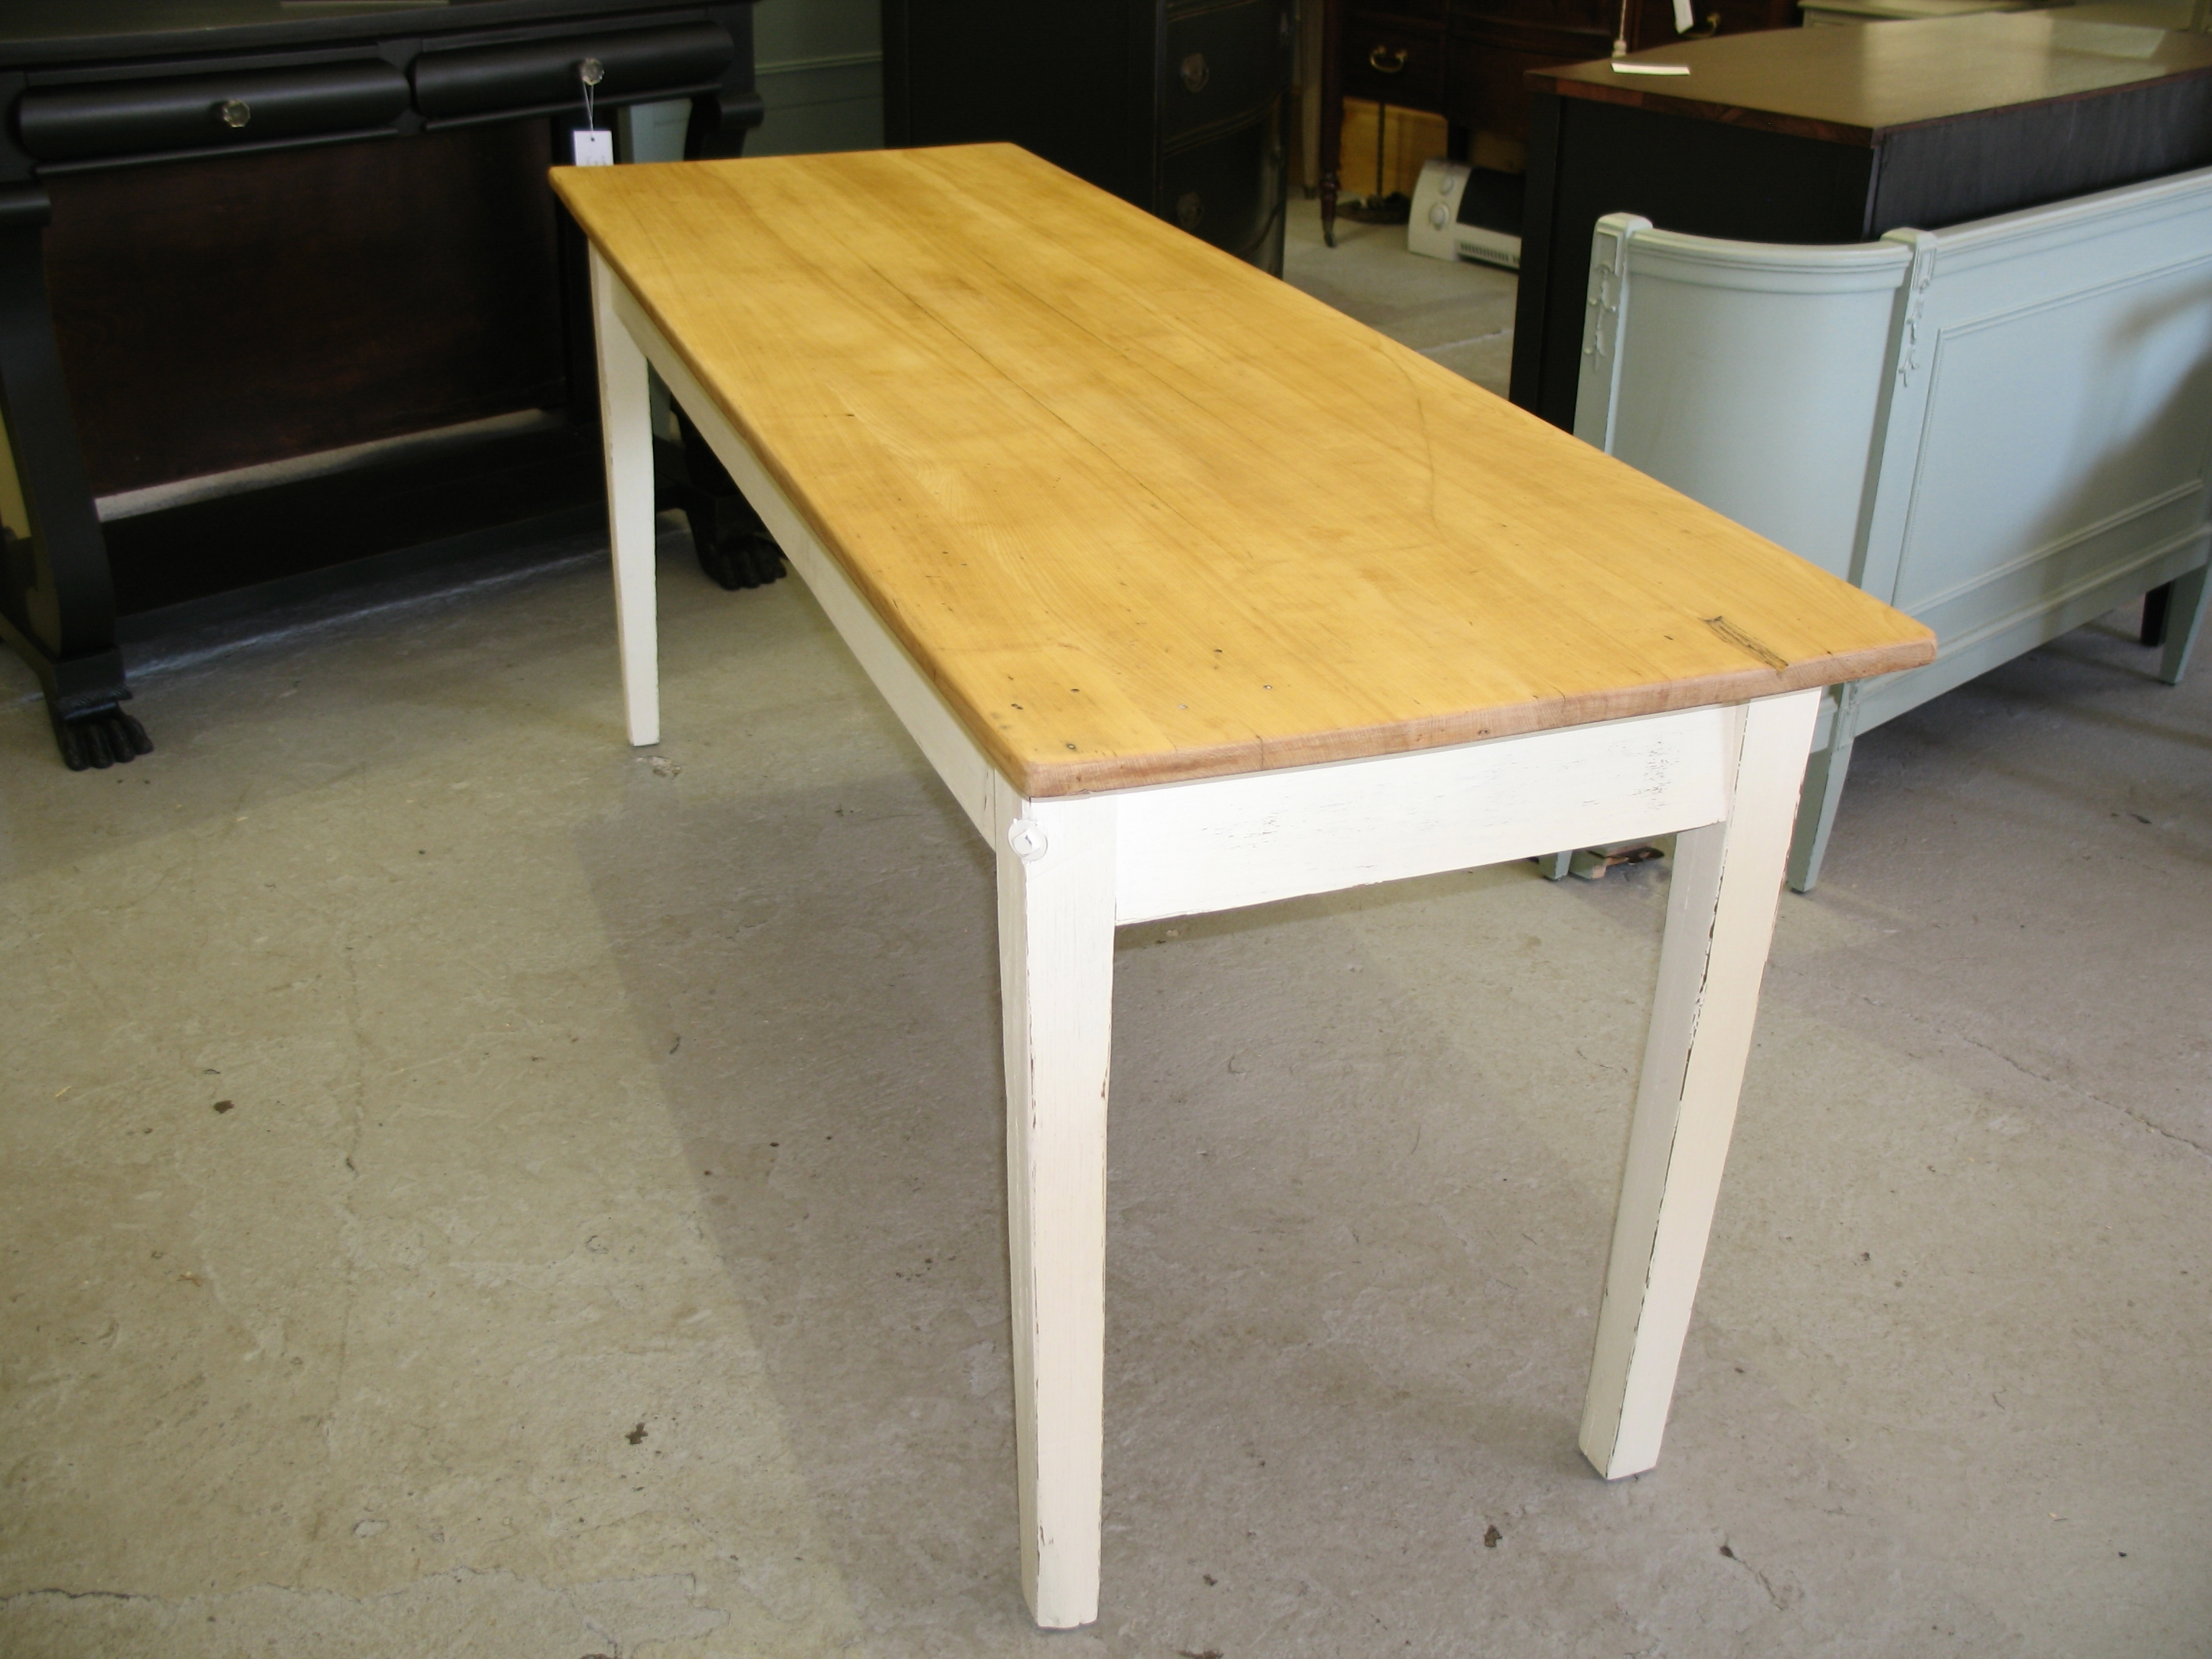 2017 Furniture: Long Narrow Dining Tables Of Including Cute What Islong intended for Thin Long Dining Tables